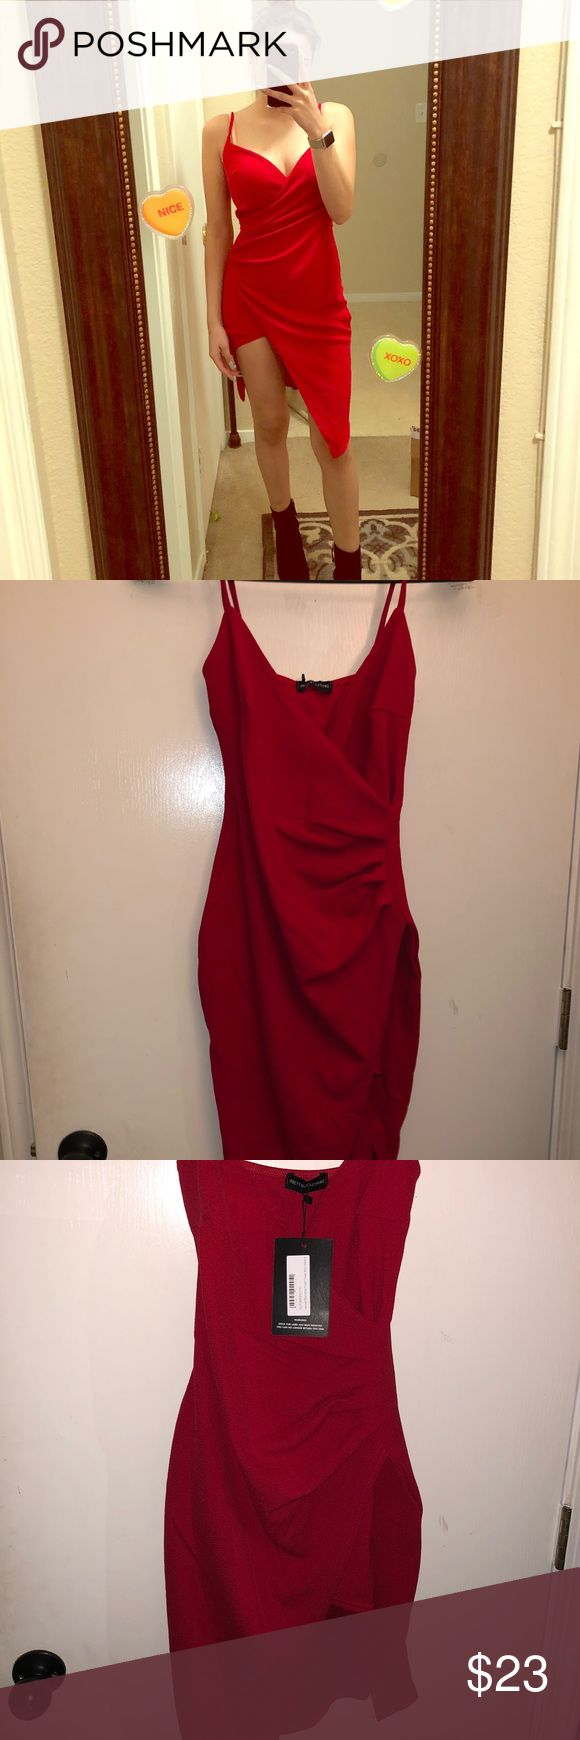 Red wrap front crepe midi dress NWT Beautiful red dress  UK Size 8 which is a size small  Didn't fit me , only tried on  Price negotiable , just take into consideration it's brand new PrettyLittleThing Dresses Midi